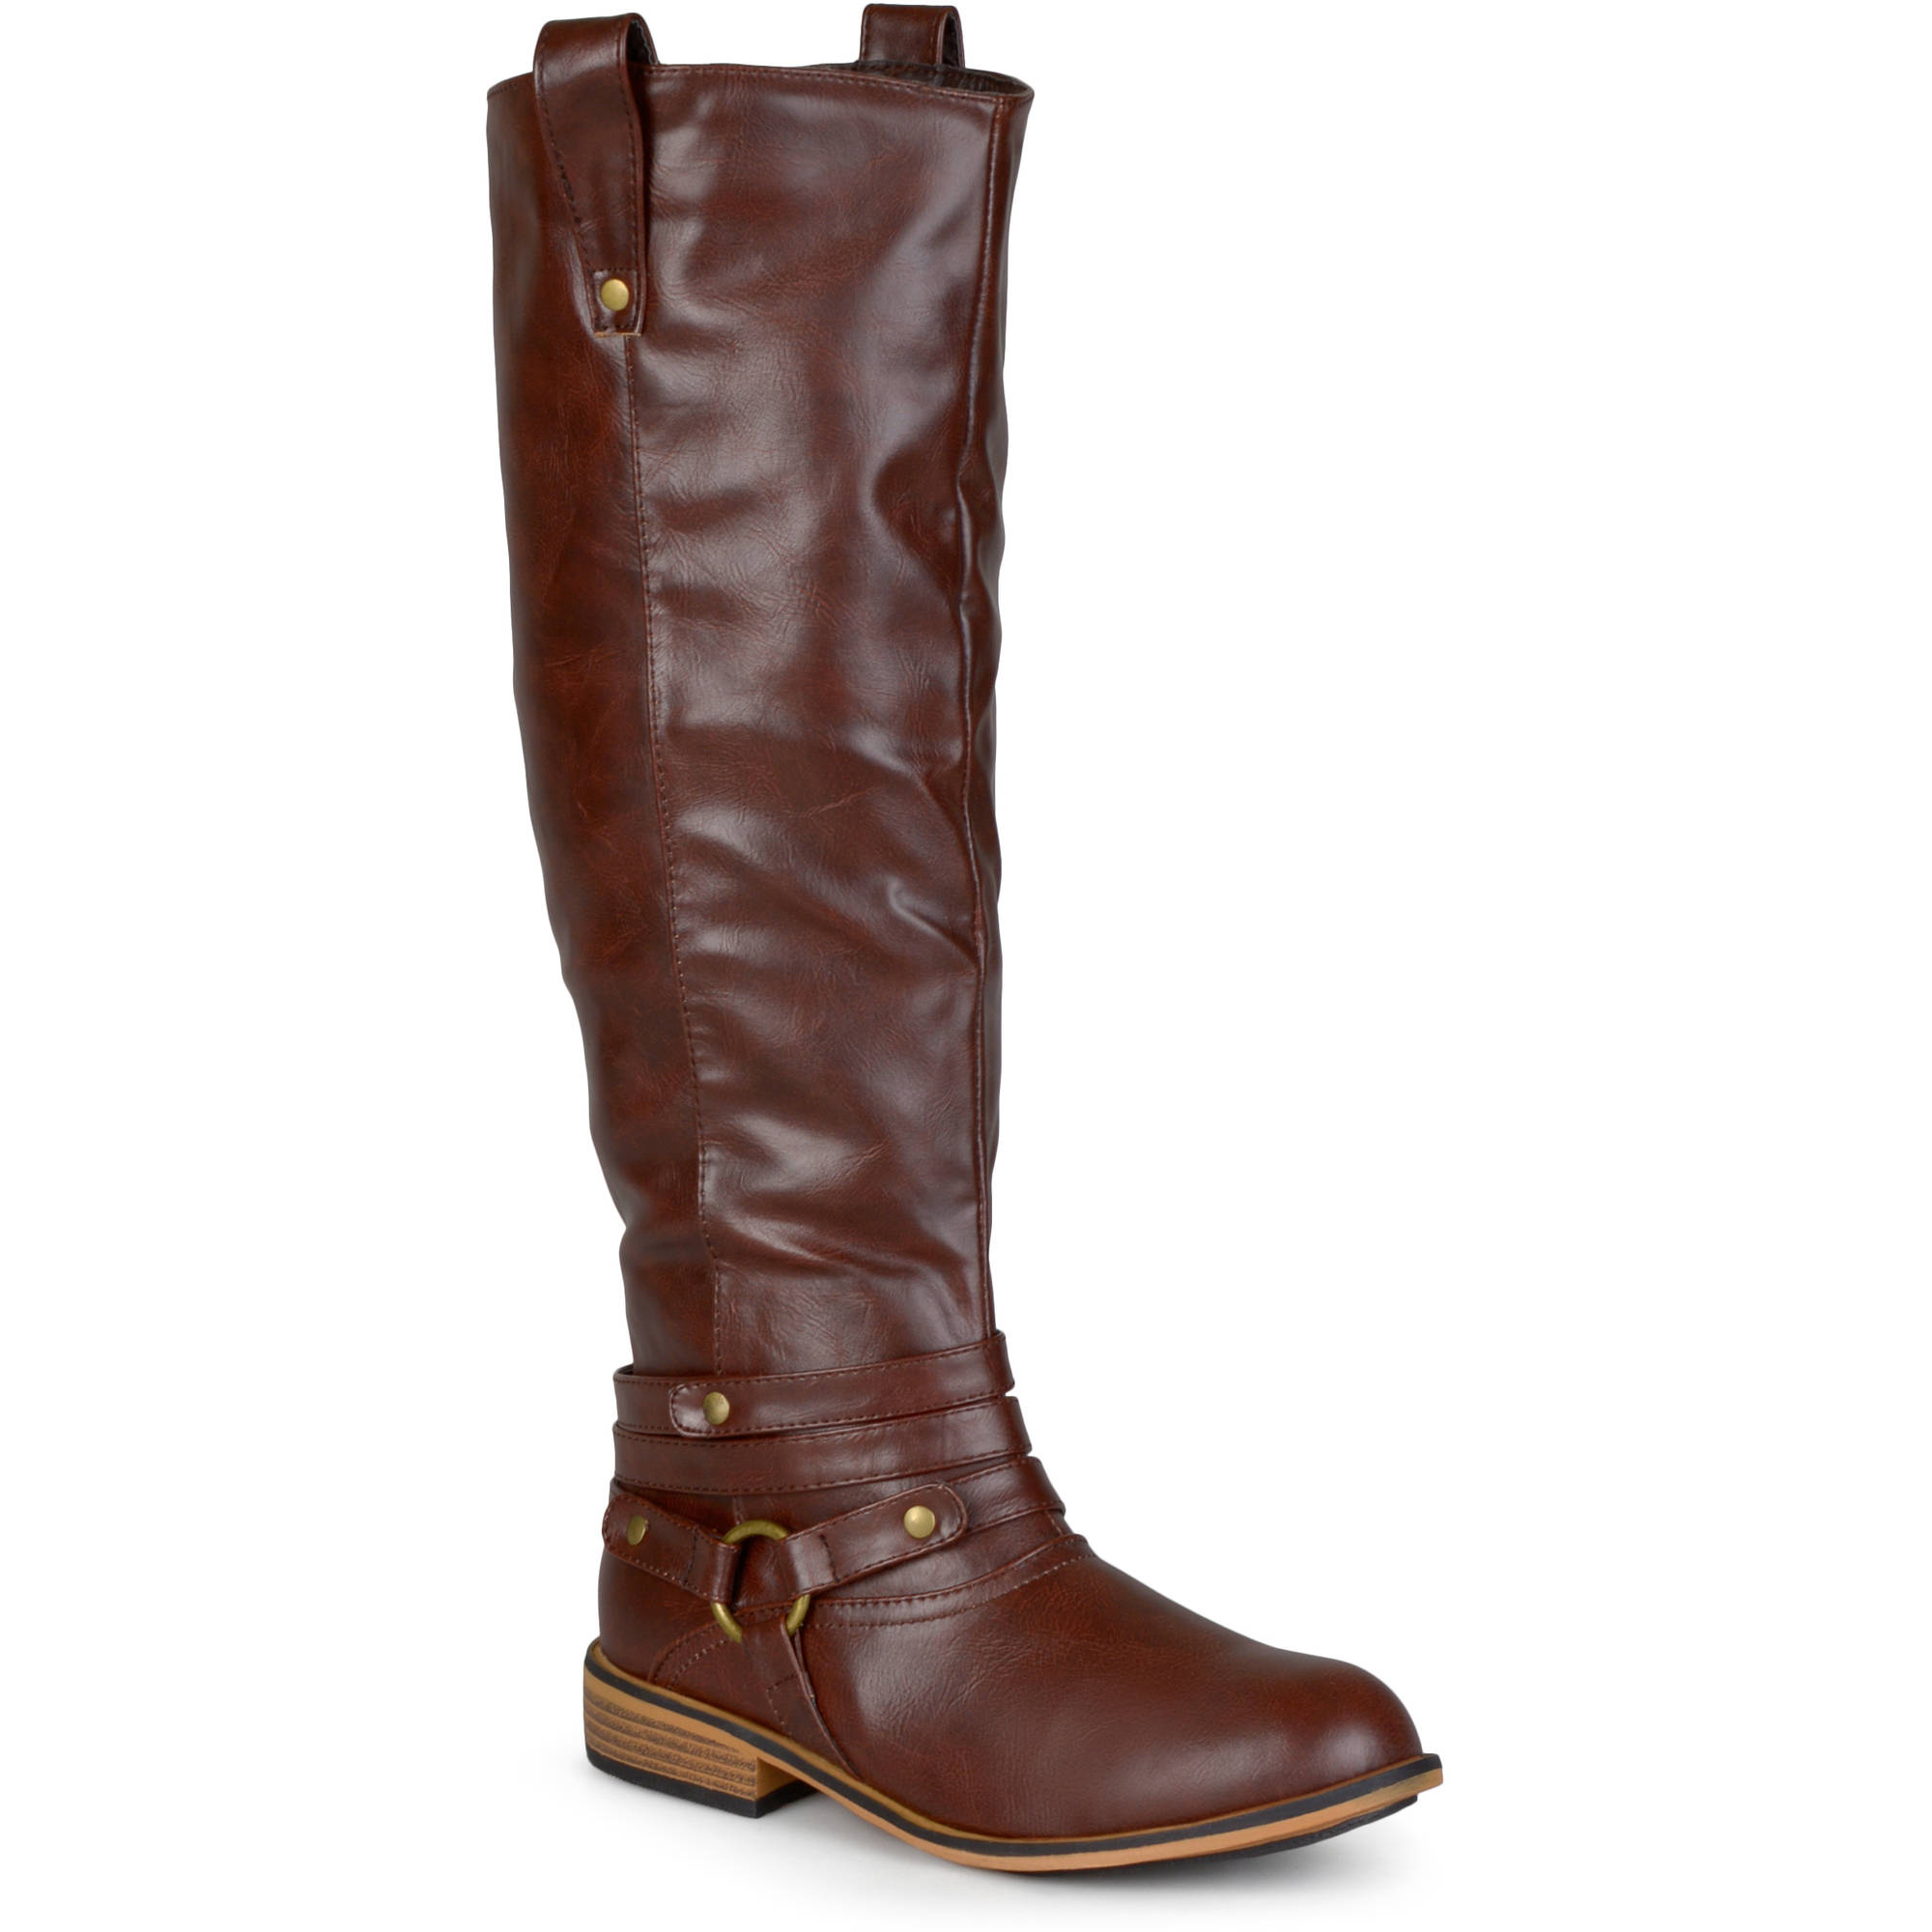 Brinley Co. Women's Mid-calf Riding Boots - Walmart.com